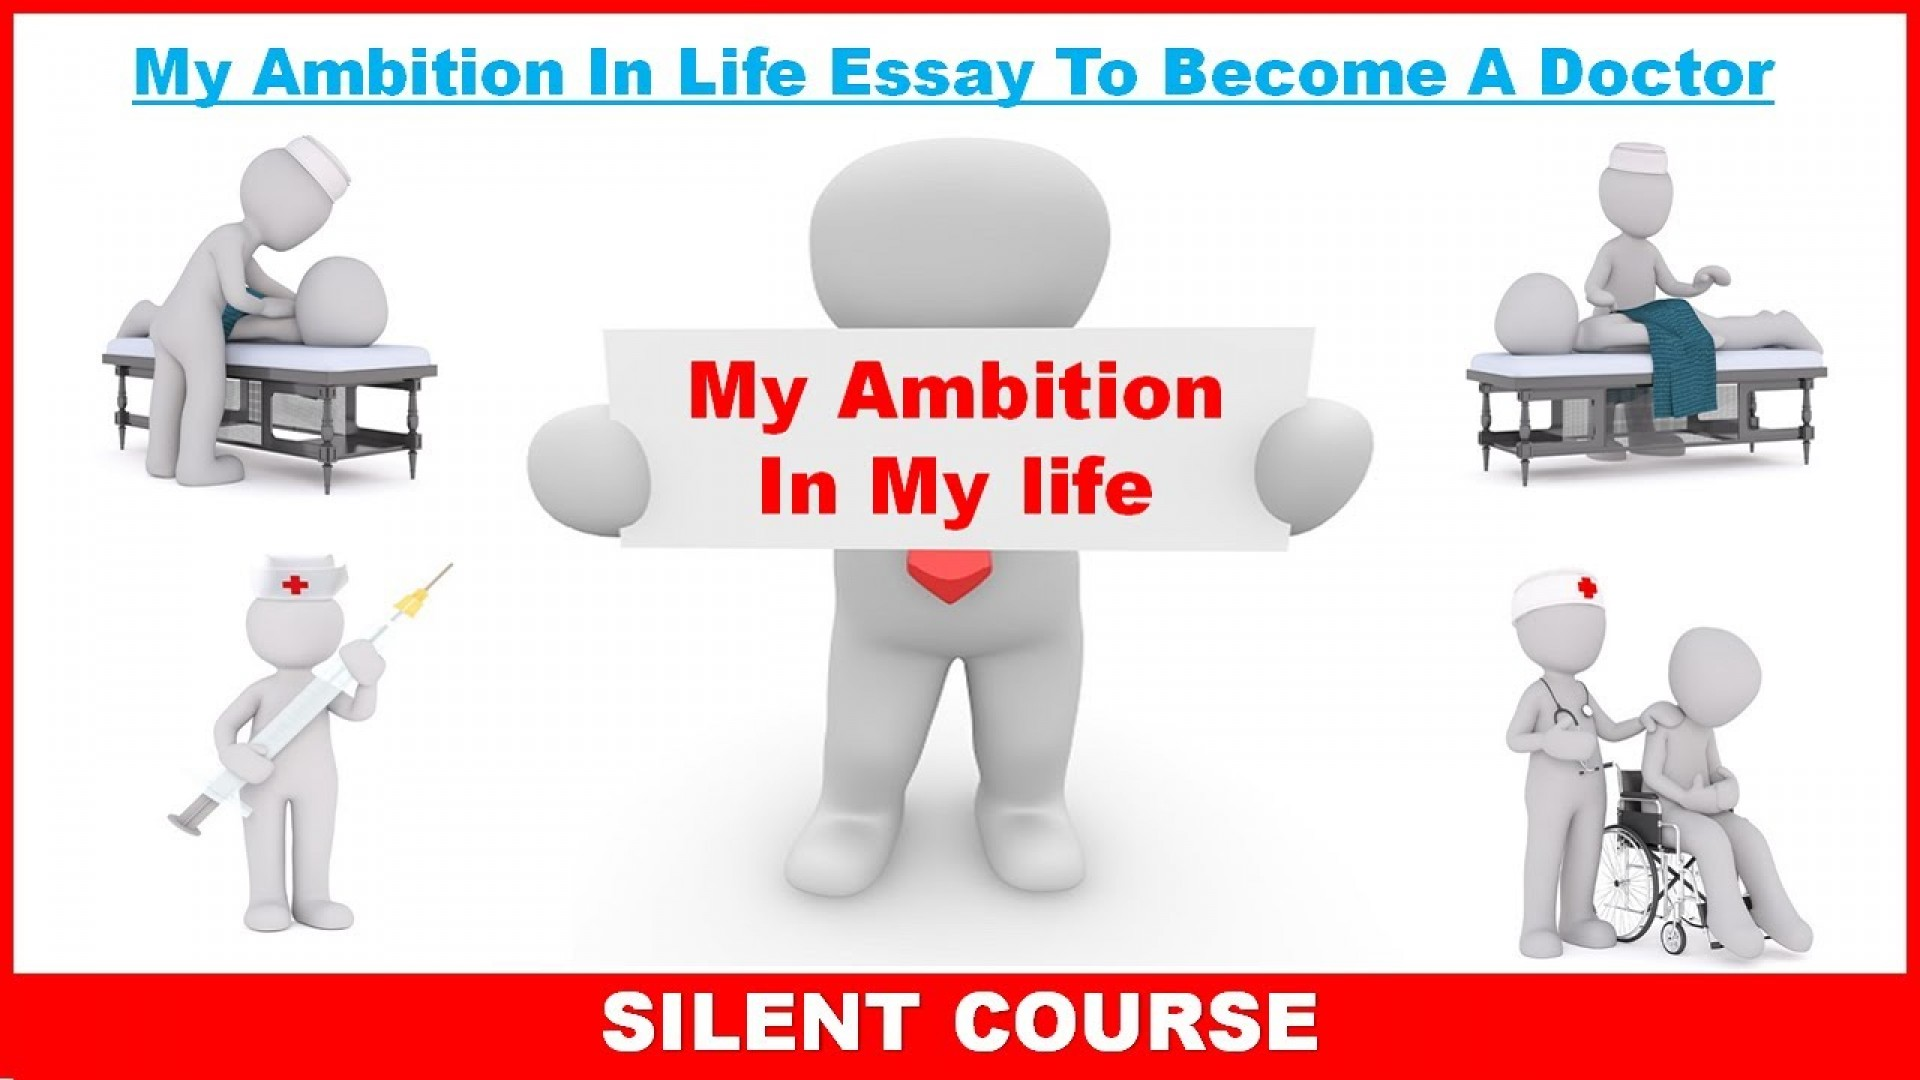 011 Essay My Ambition Doctor Example Stupendous On To Become A For Class 10 In Life 3 English 1920